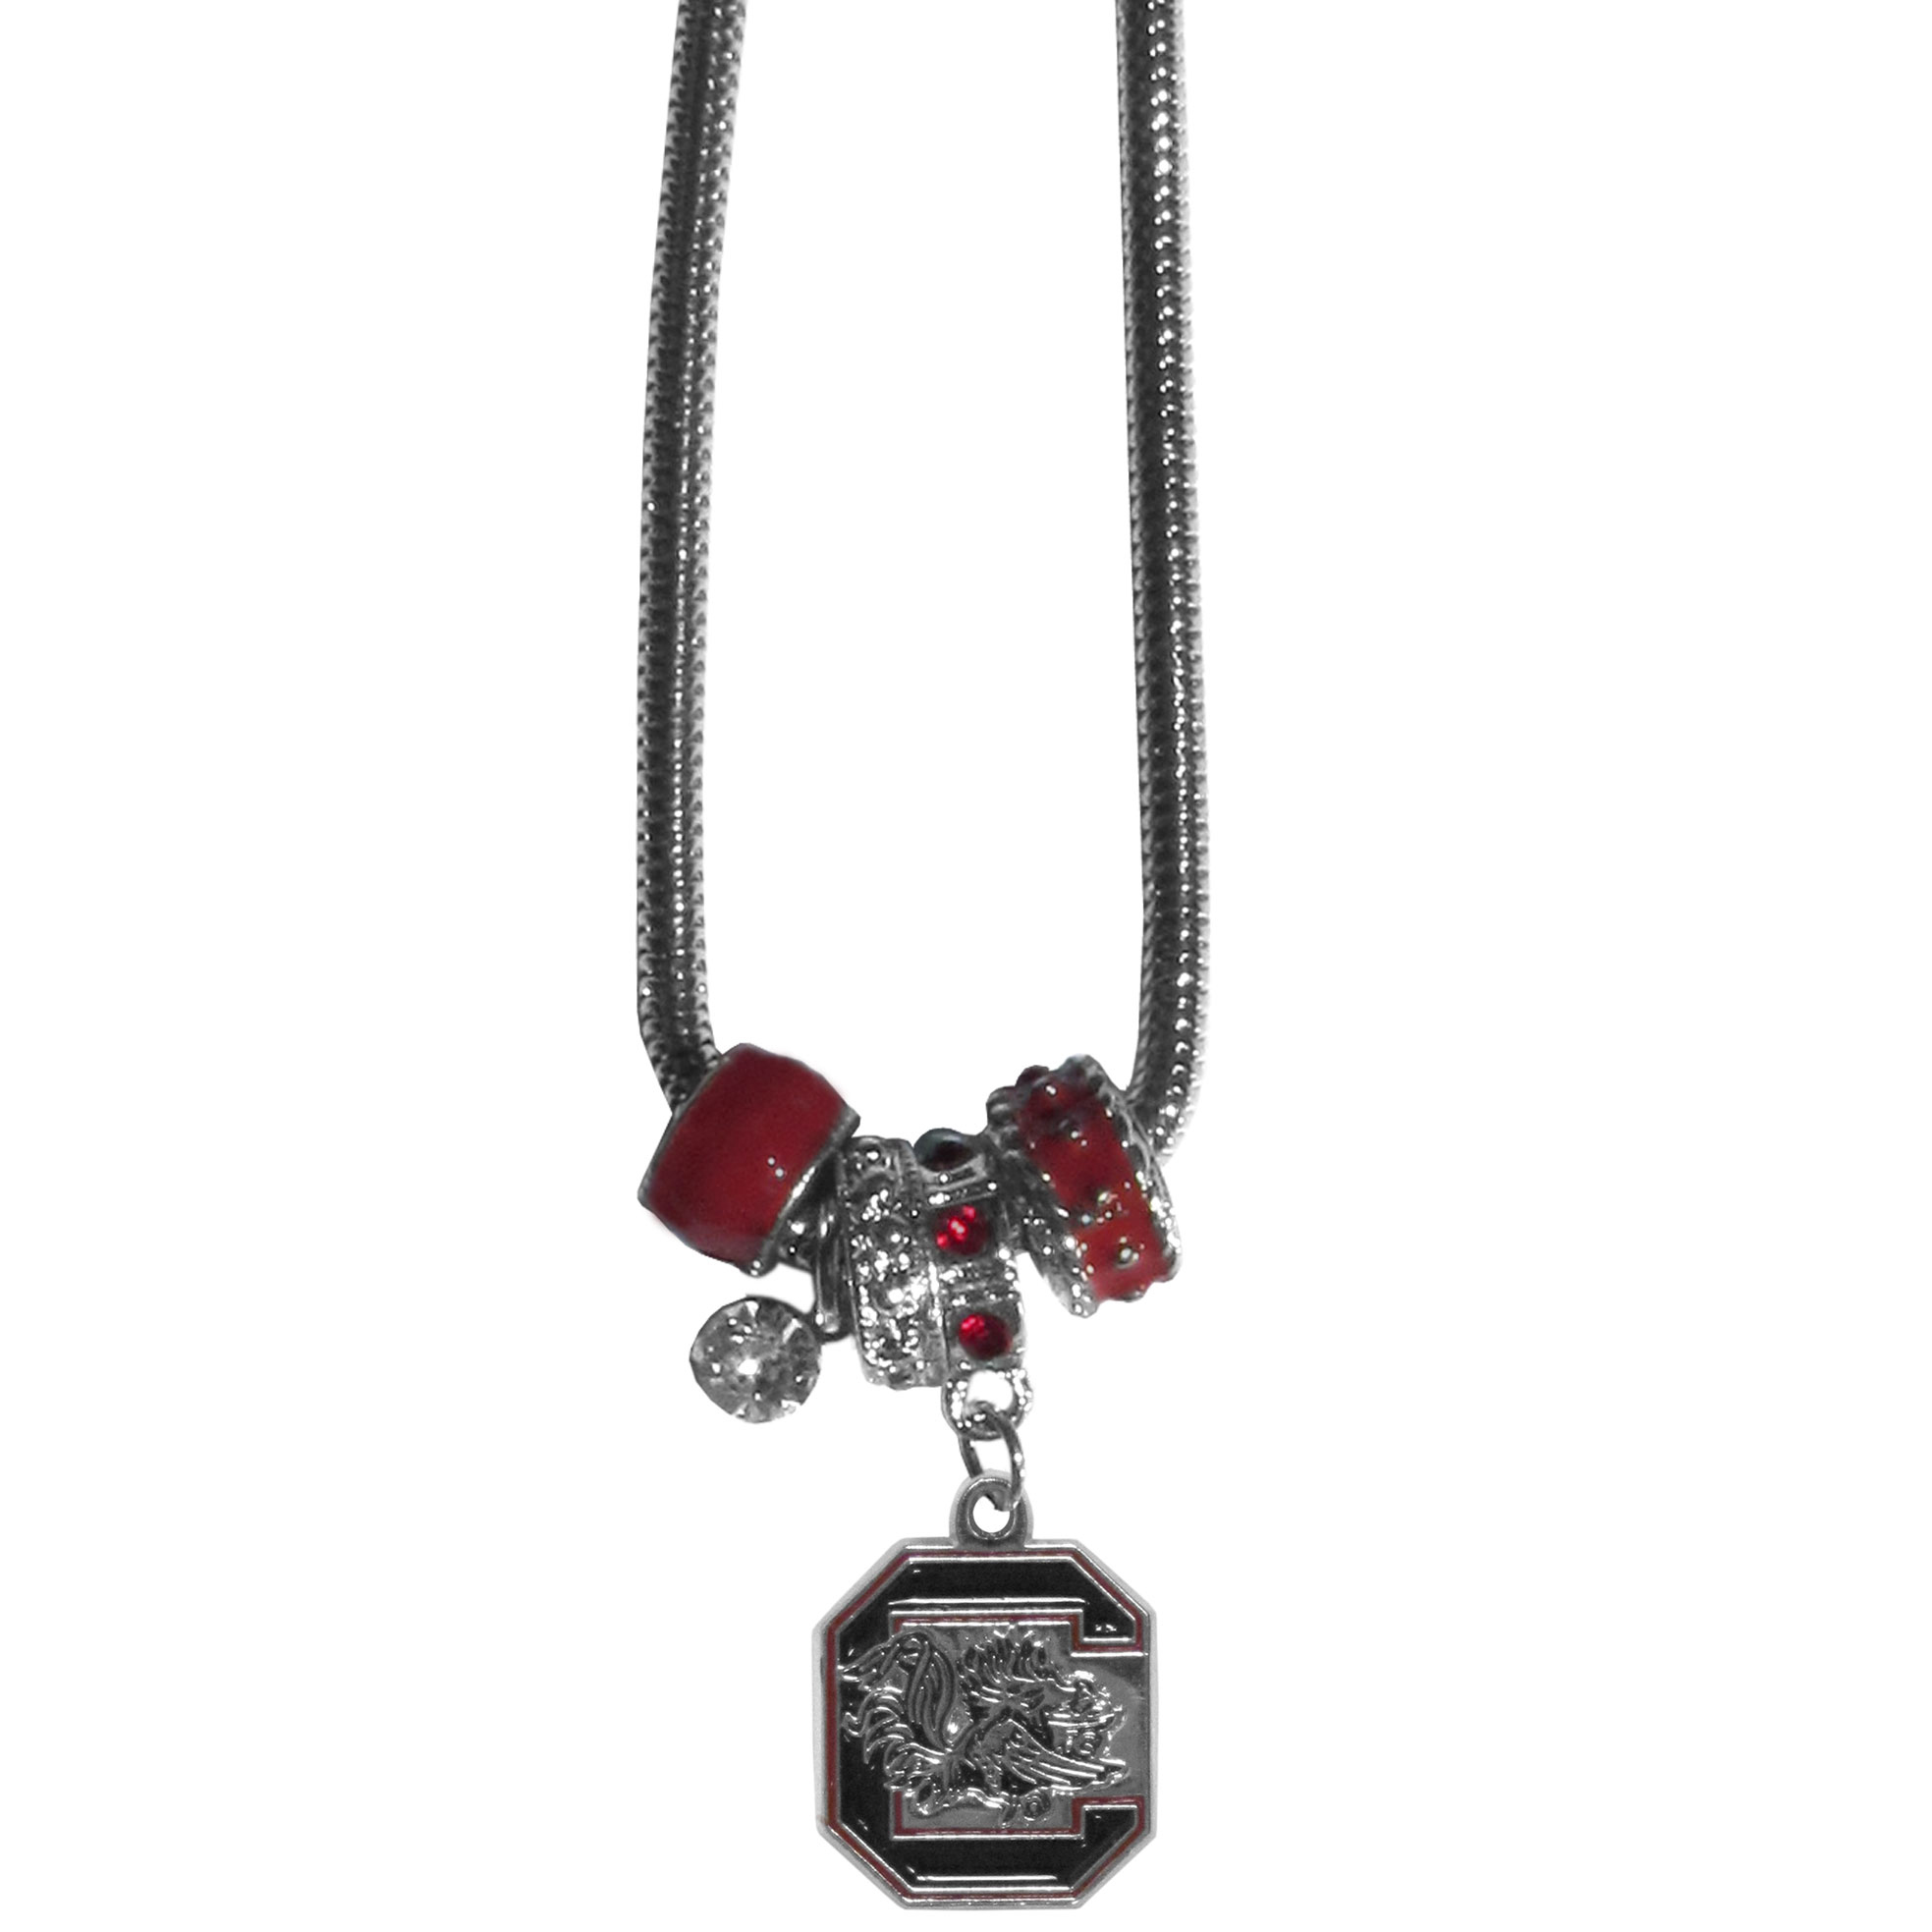 S. Carolina Gamecocks Euro Bead Necklace - We have combined the wildly popular Euro style beads with your favorite team to create our S. Carolina Gamecocks bead necklace. The 18 inch snake chain features 4 Euro beads with enameled team colors and rhinestone accents with a high polish, nickel free charm and rhinestone charm. Perfect way to show off your team pride. Thank you for shopping with CrazedOutSports.com